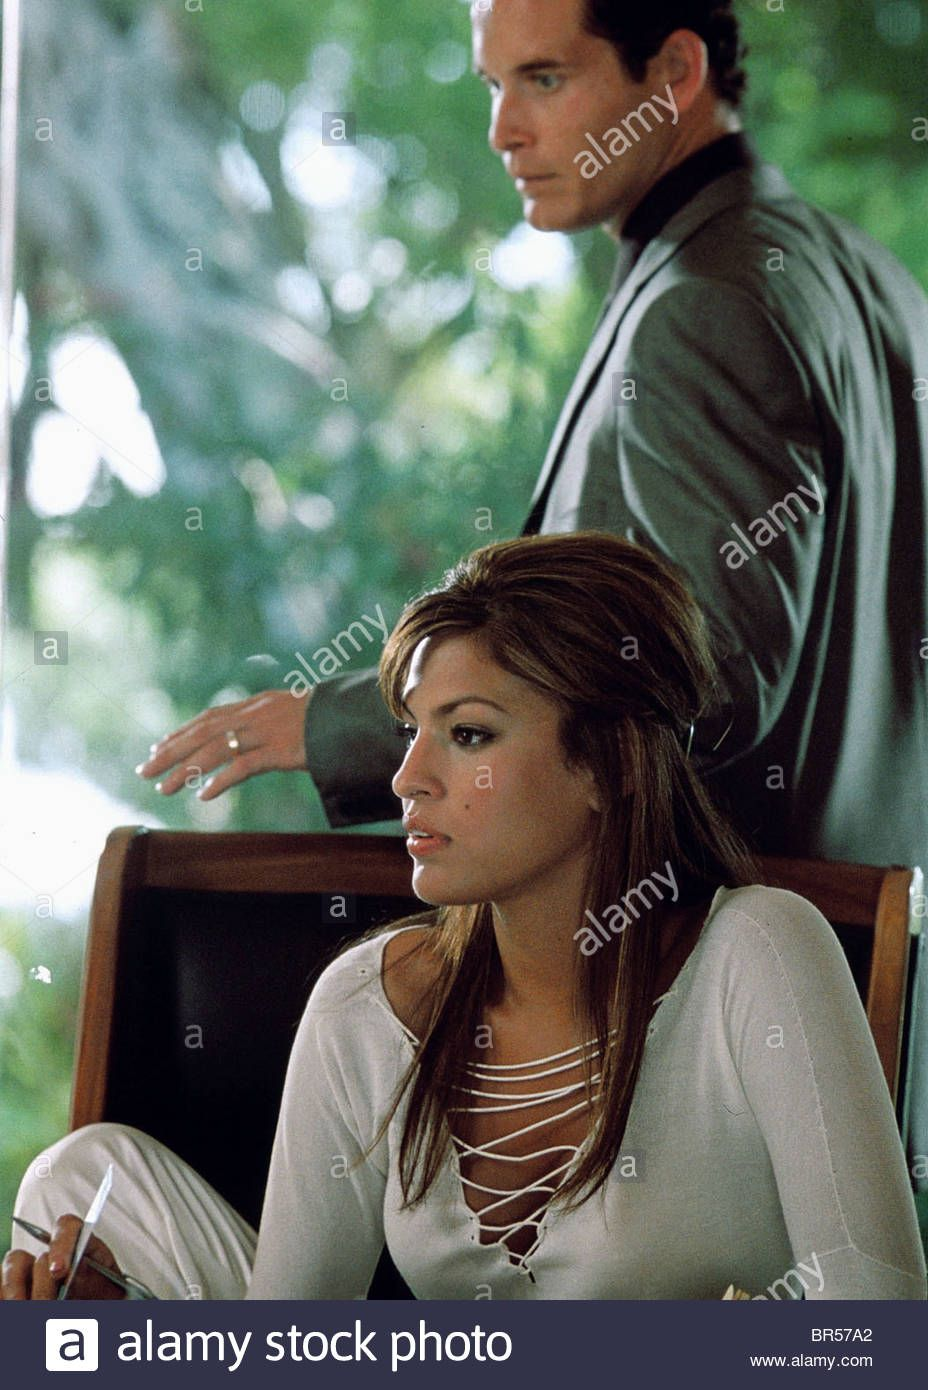 Download This Stock Image EVA MENDES COLE HAUSER 2 FAST FURIOUS THE AND 2003